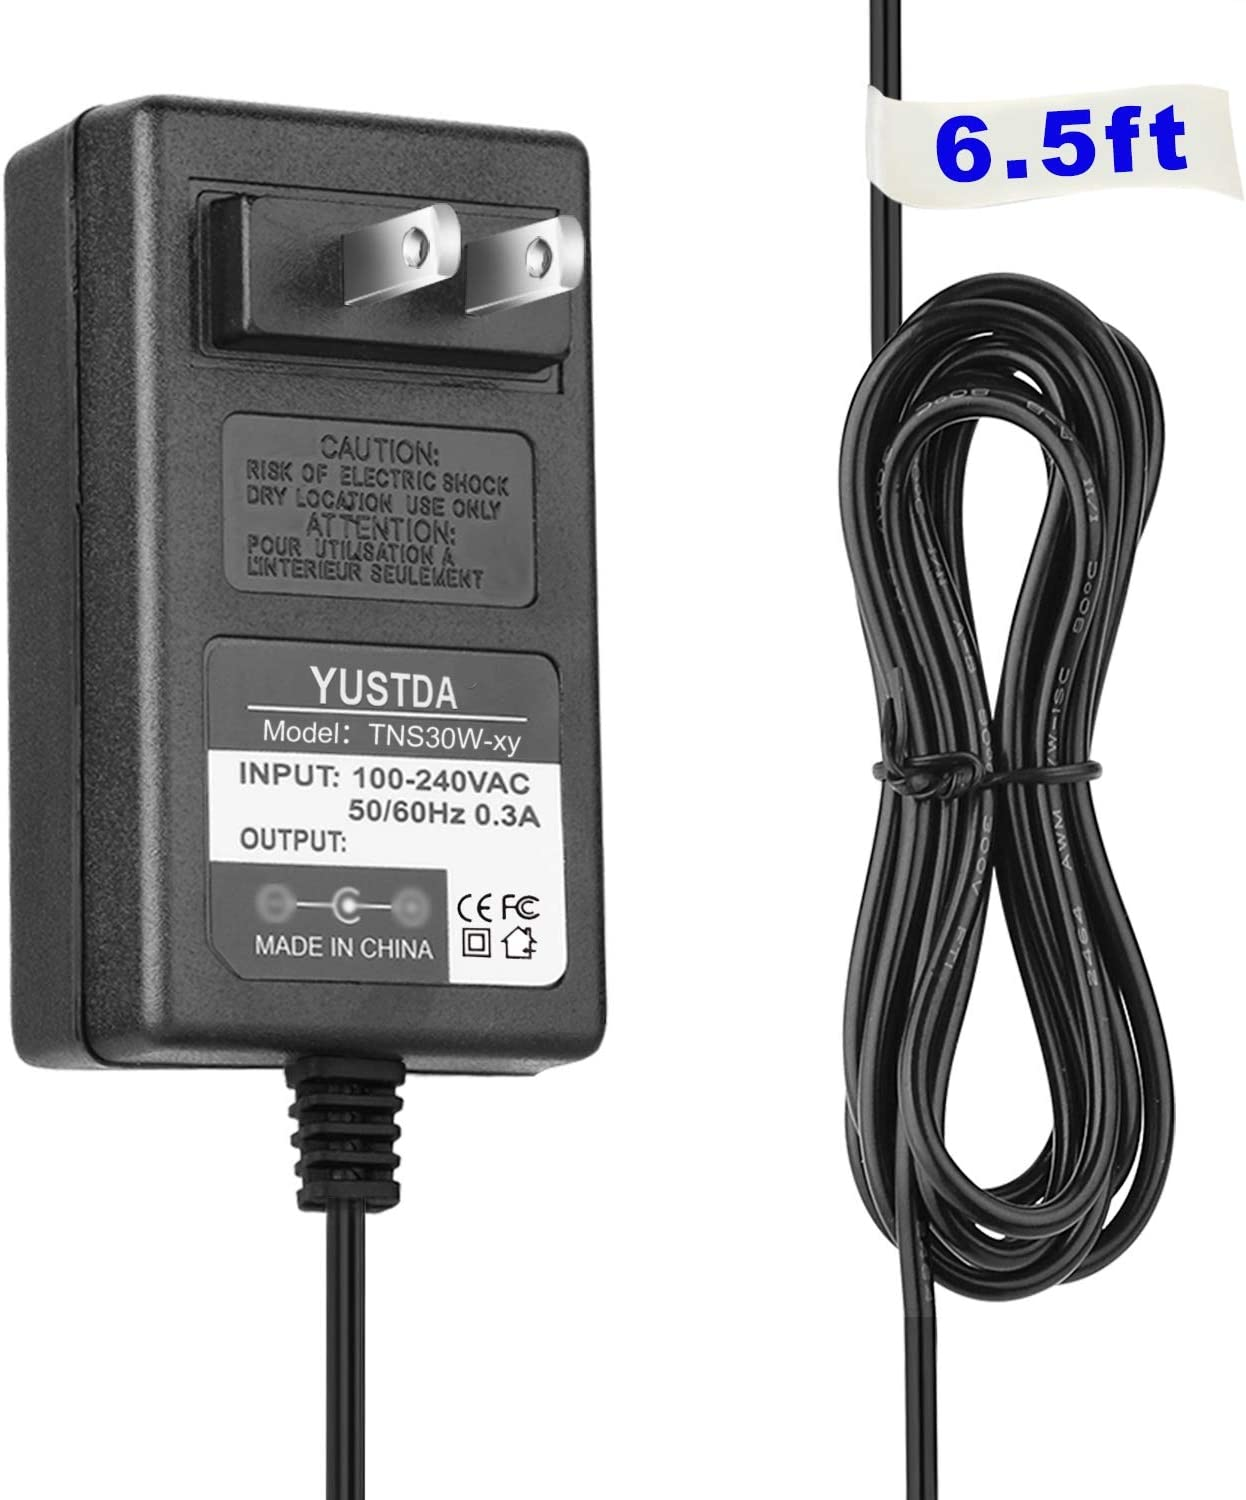 AC//DC Adapter for D-Link Model AMS1-0501200FU AMS10501200FU DLink 5V 1.2A-2A-2.5A 5VDC 5 Volts 1200mA-2000mA-2500mA 1.2 Amps-2 Amps-2.5 Amps Power Supply Cord